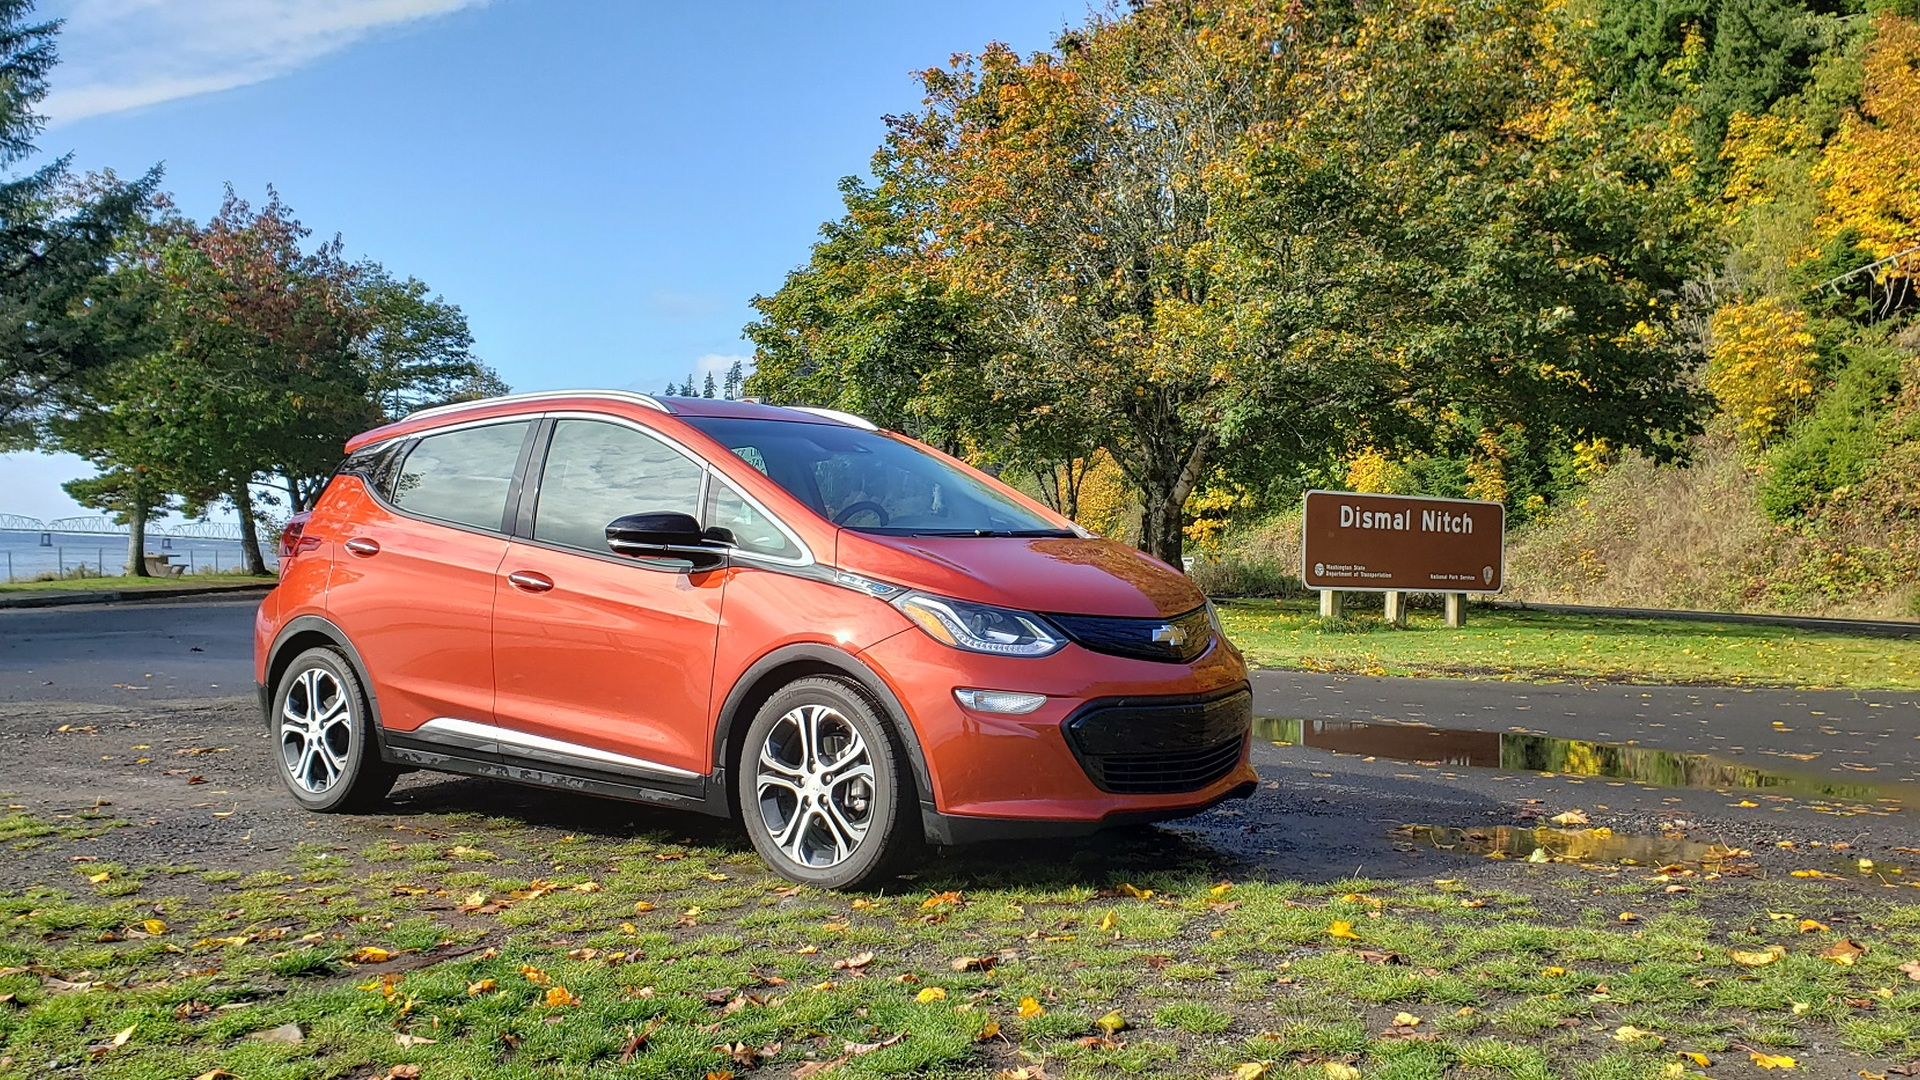 2020 Chevrolet Bolt EV, Dismal Nitch, Washington